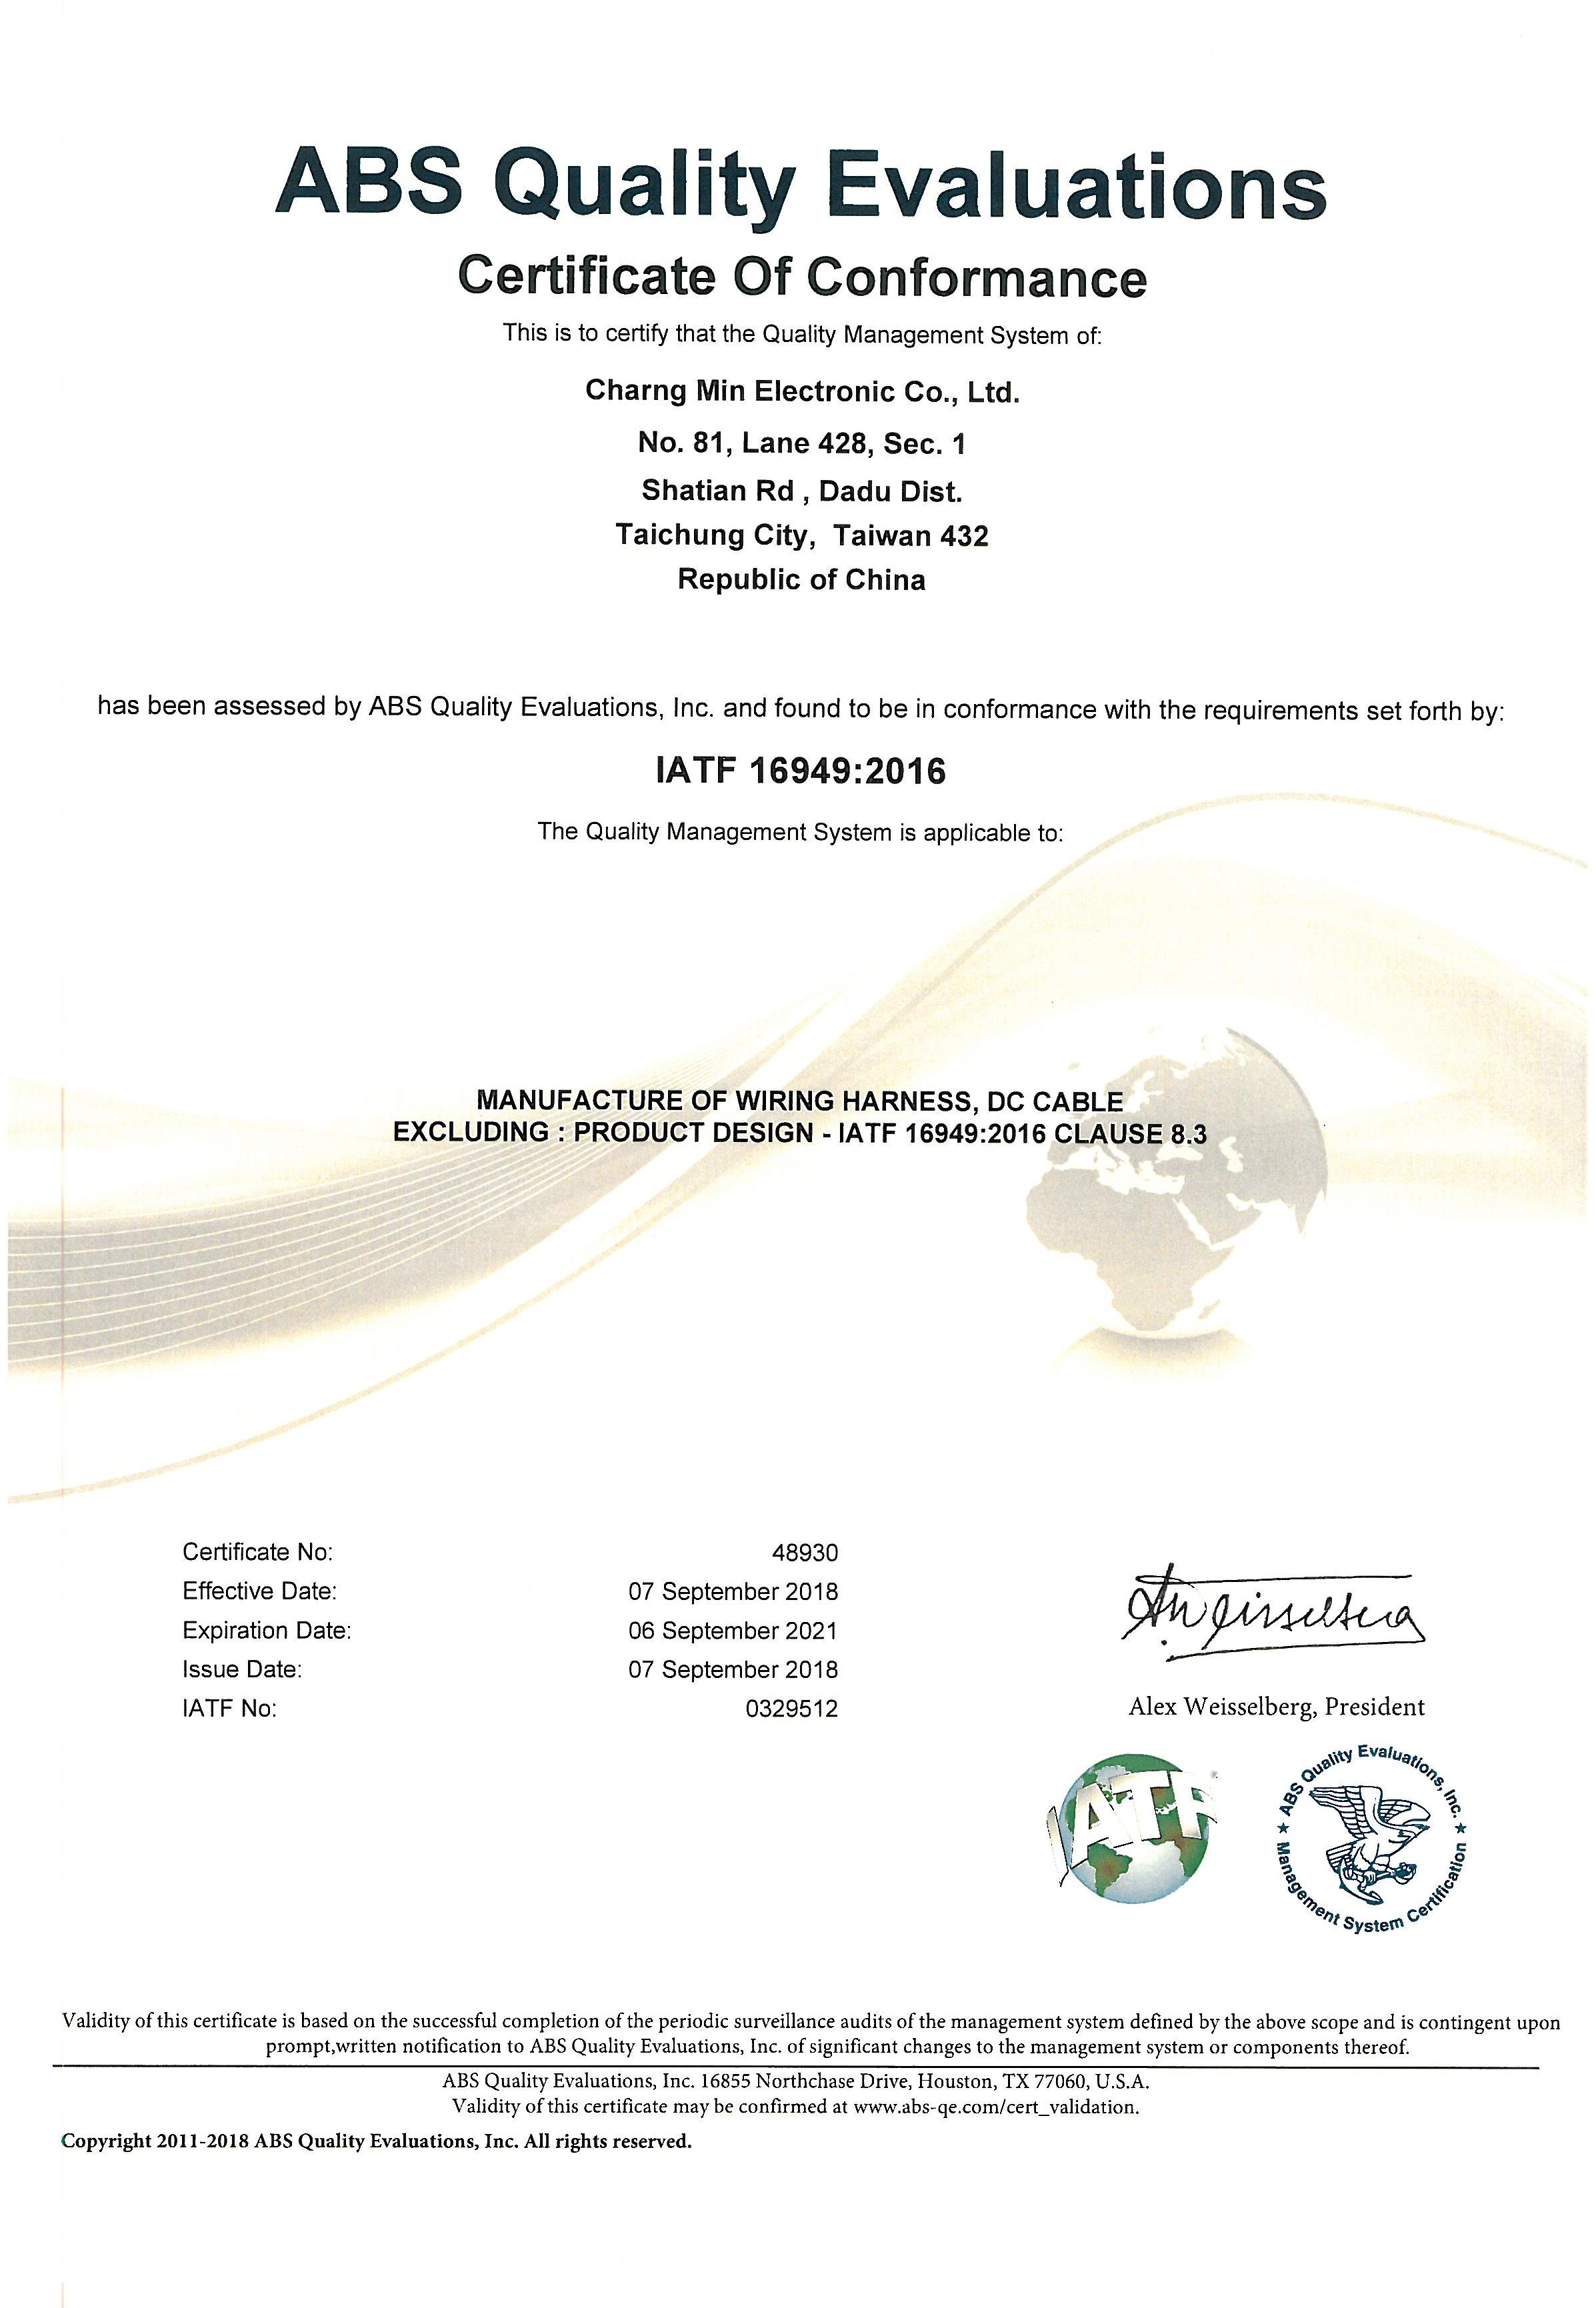 Charng Min Has Passed Iatf 169492016 Certification Wiring Harness News Activities Photos